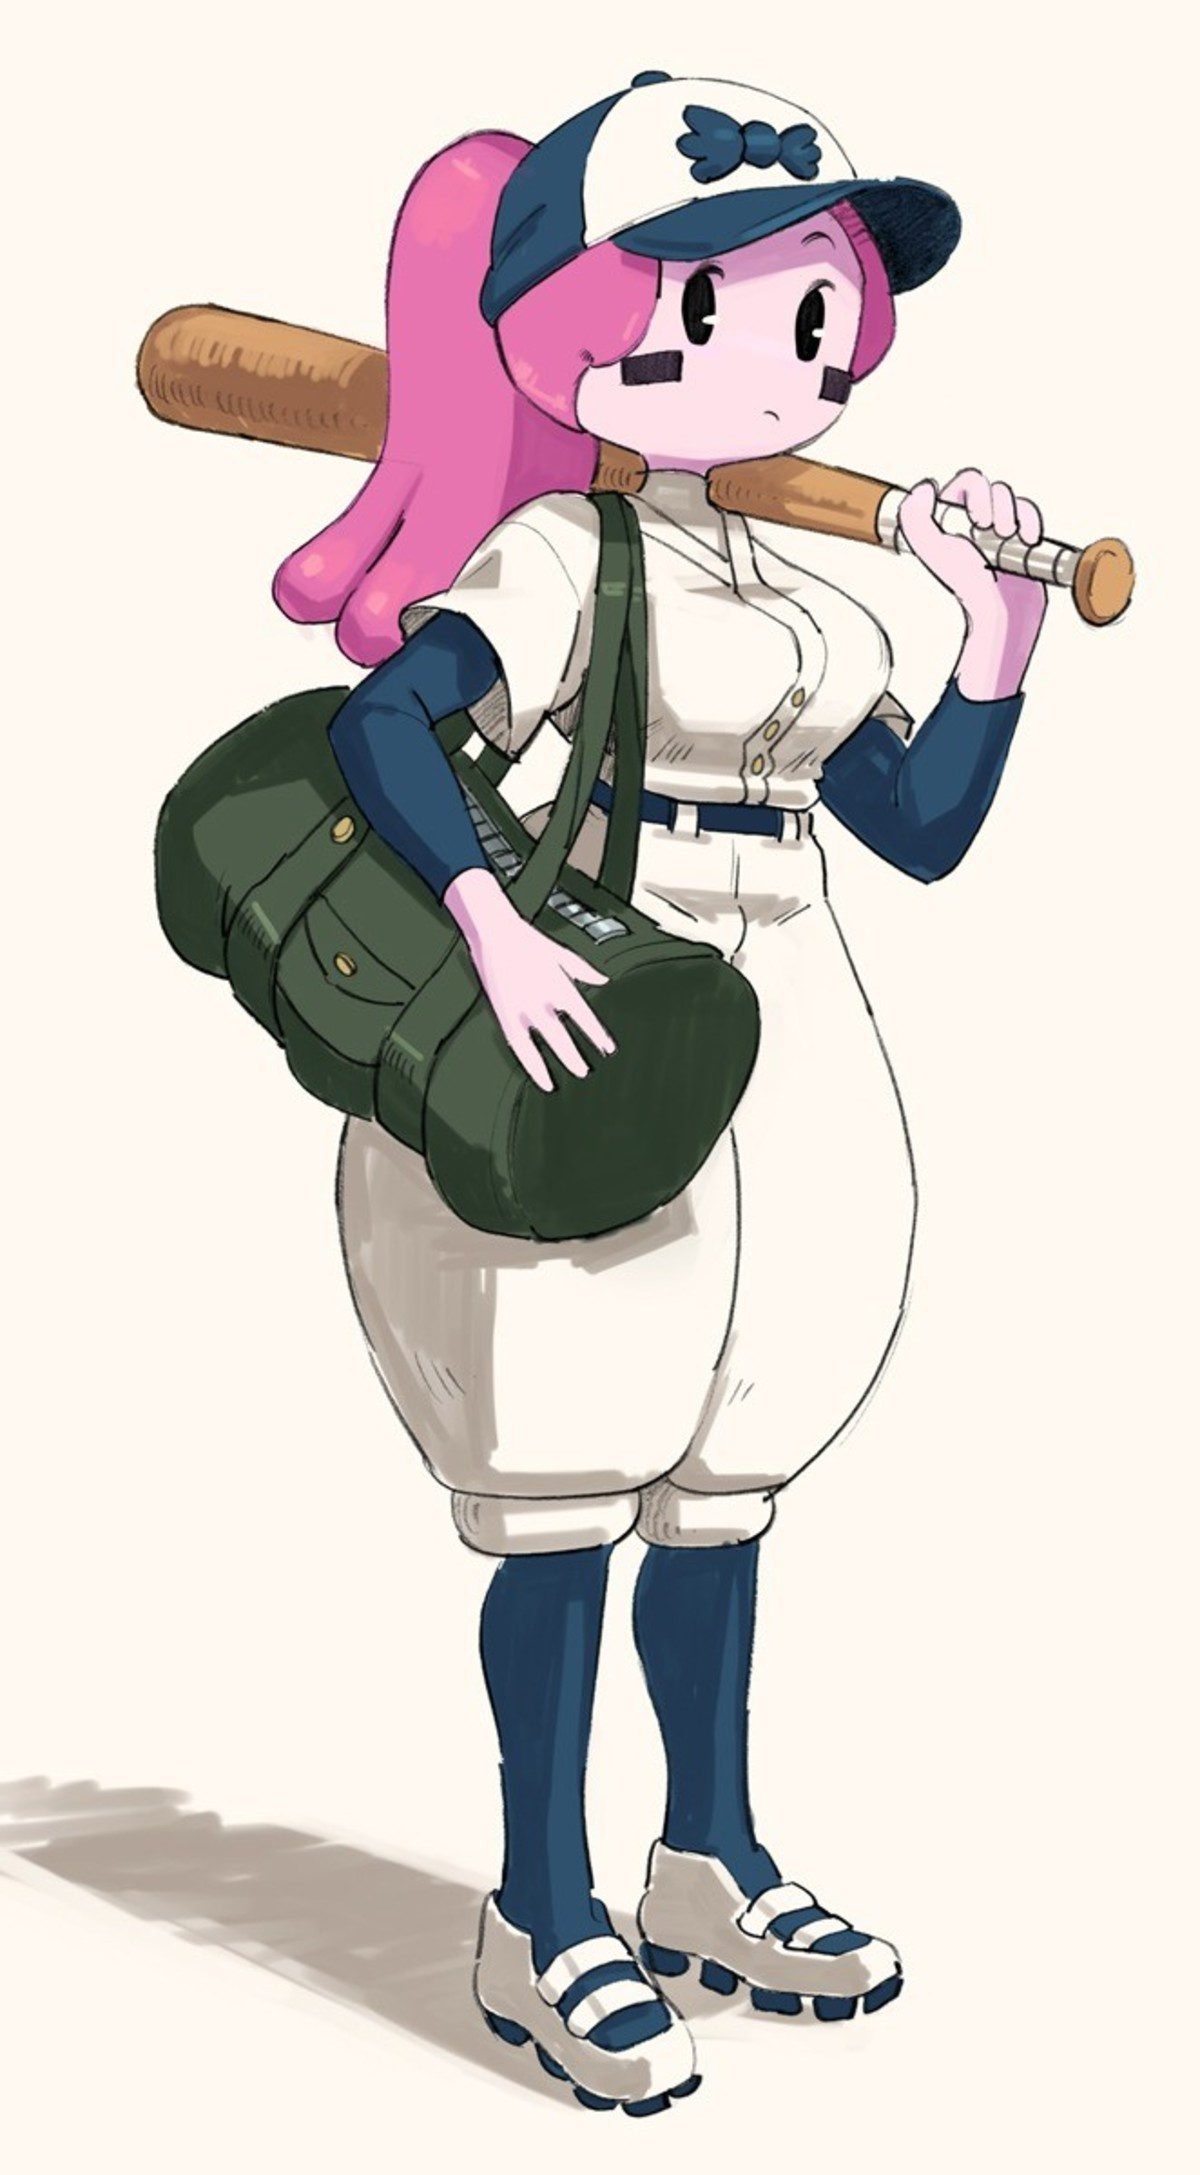 Bubble Butt up to Bat. join list: KlictiChasers (135 subs)Mention History.. Why those pants so damn puffy though?